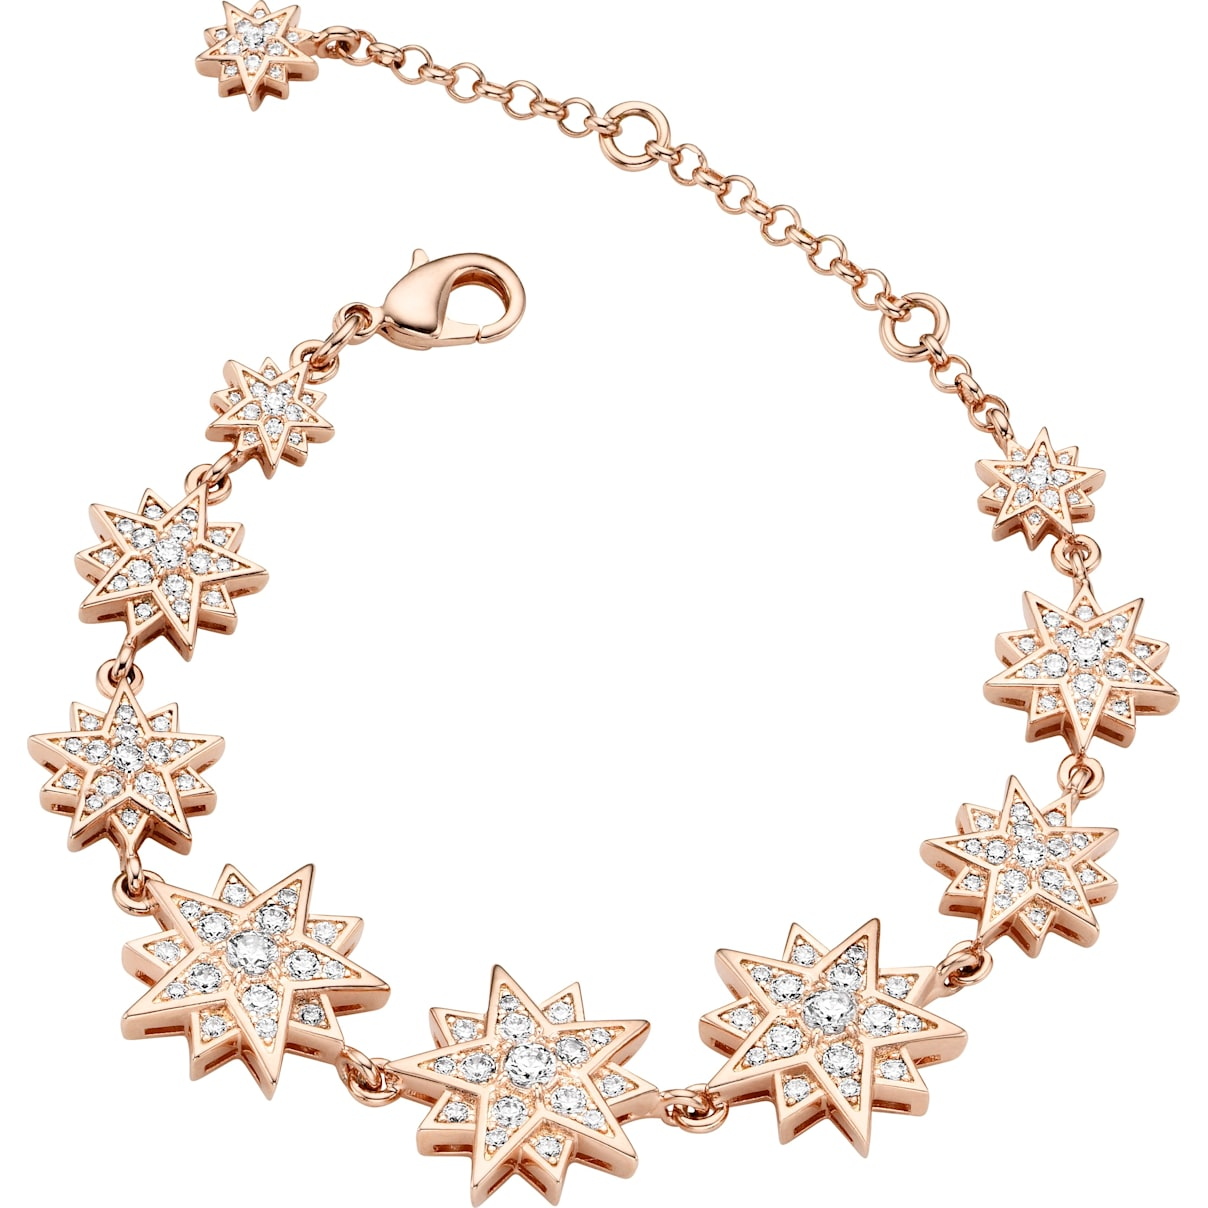 Swarovski Penélope Cruz Moonsun Bracelet, Limited Edition, White, Rose-gold tone plated